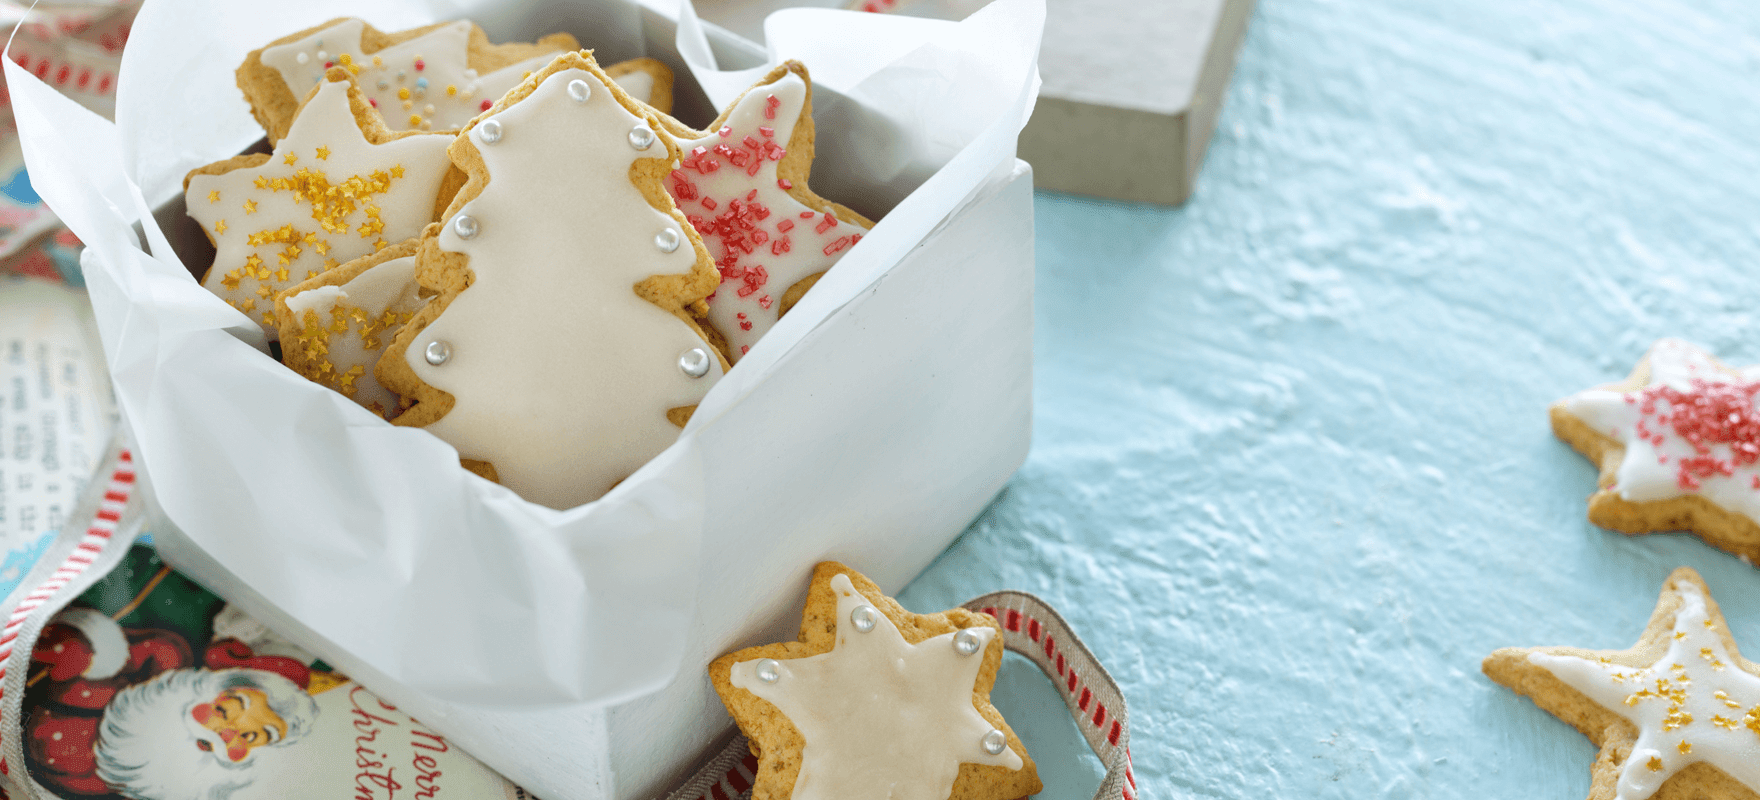 Christmas biscuits image 1